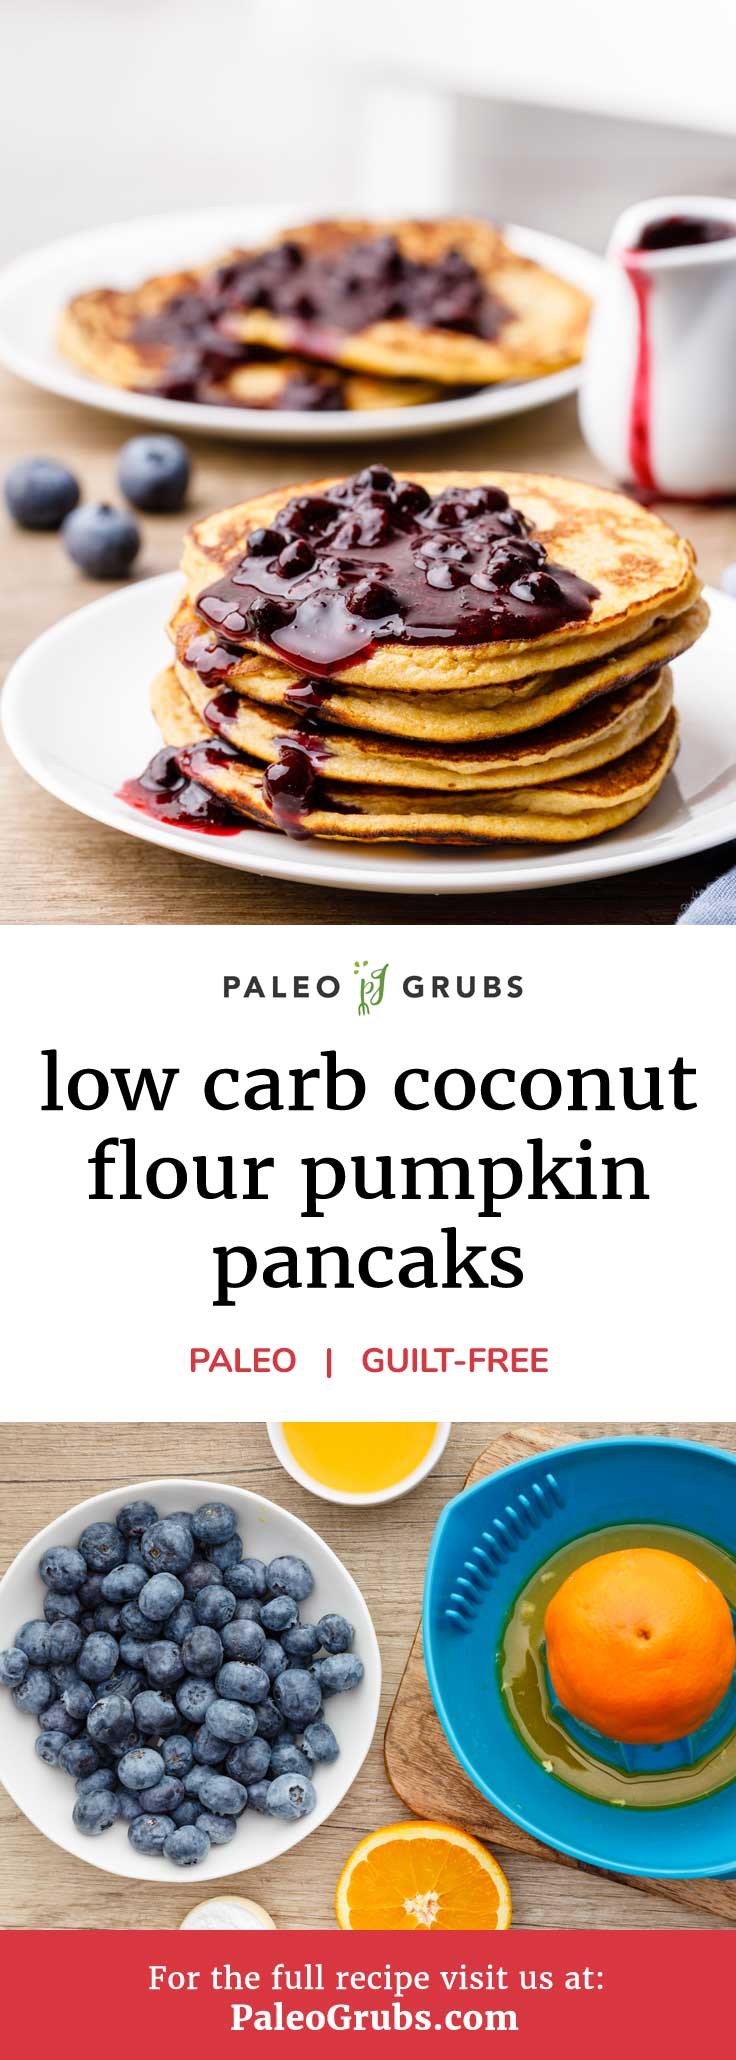 Enjoying paleo pancakes for breakfast is nothing new. There are dozens upon dozens of healthy ways to enjoy making pancakes from scratch, using everything from bananas to sweet potatoes. However, this low carb coconut flour pumpkin pancake recipe just might end up being your new favorite. Just wait until you try the delicious homemade blueberry syrup.